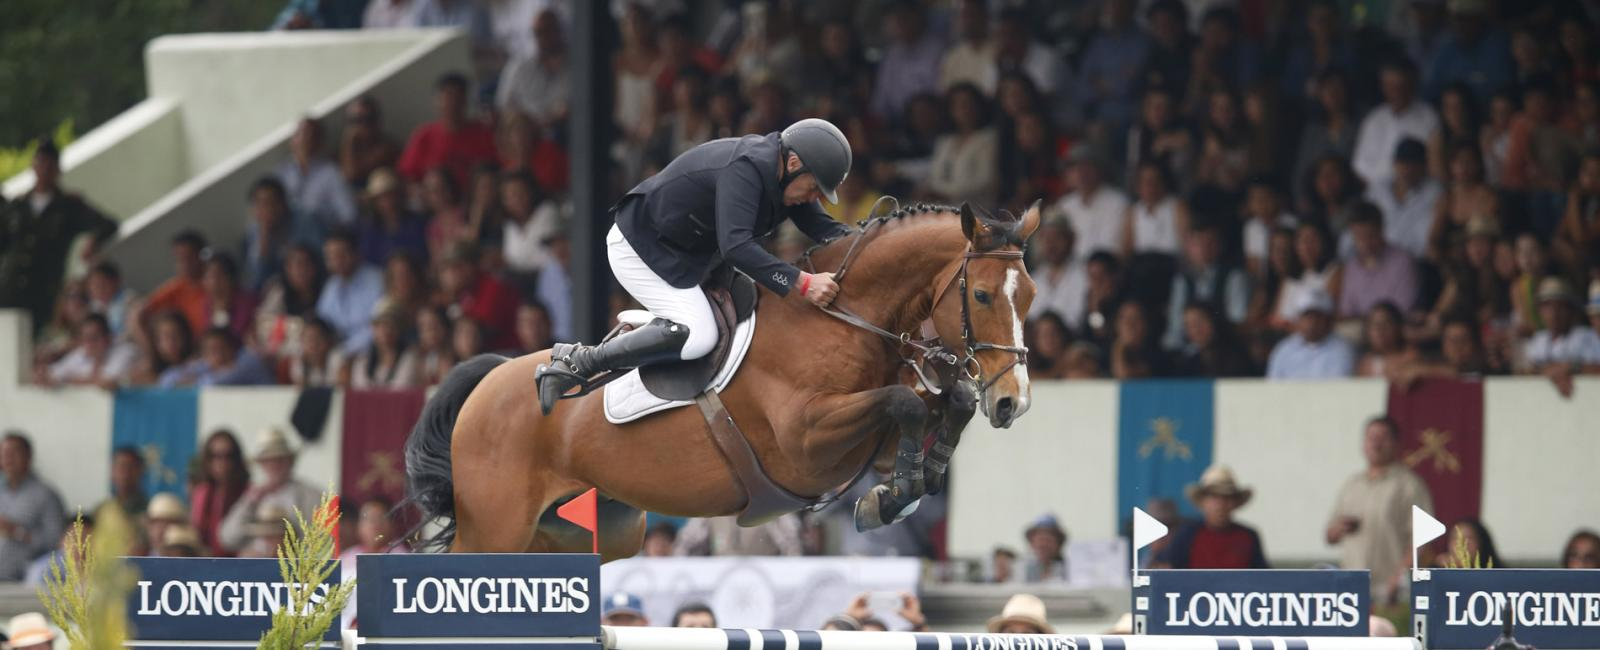 Longines Global Champions Tour of Mexico;Jumping;2016